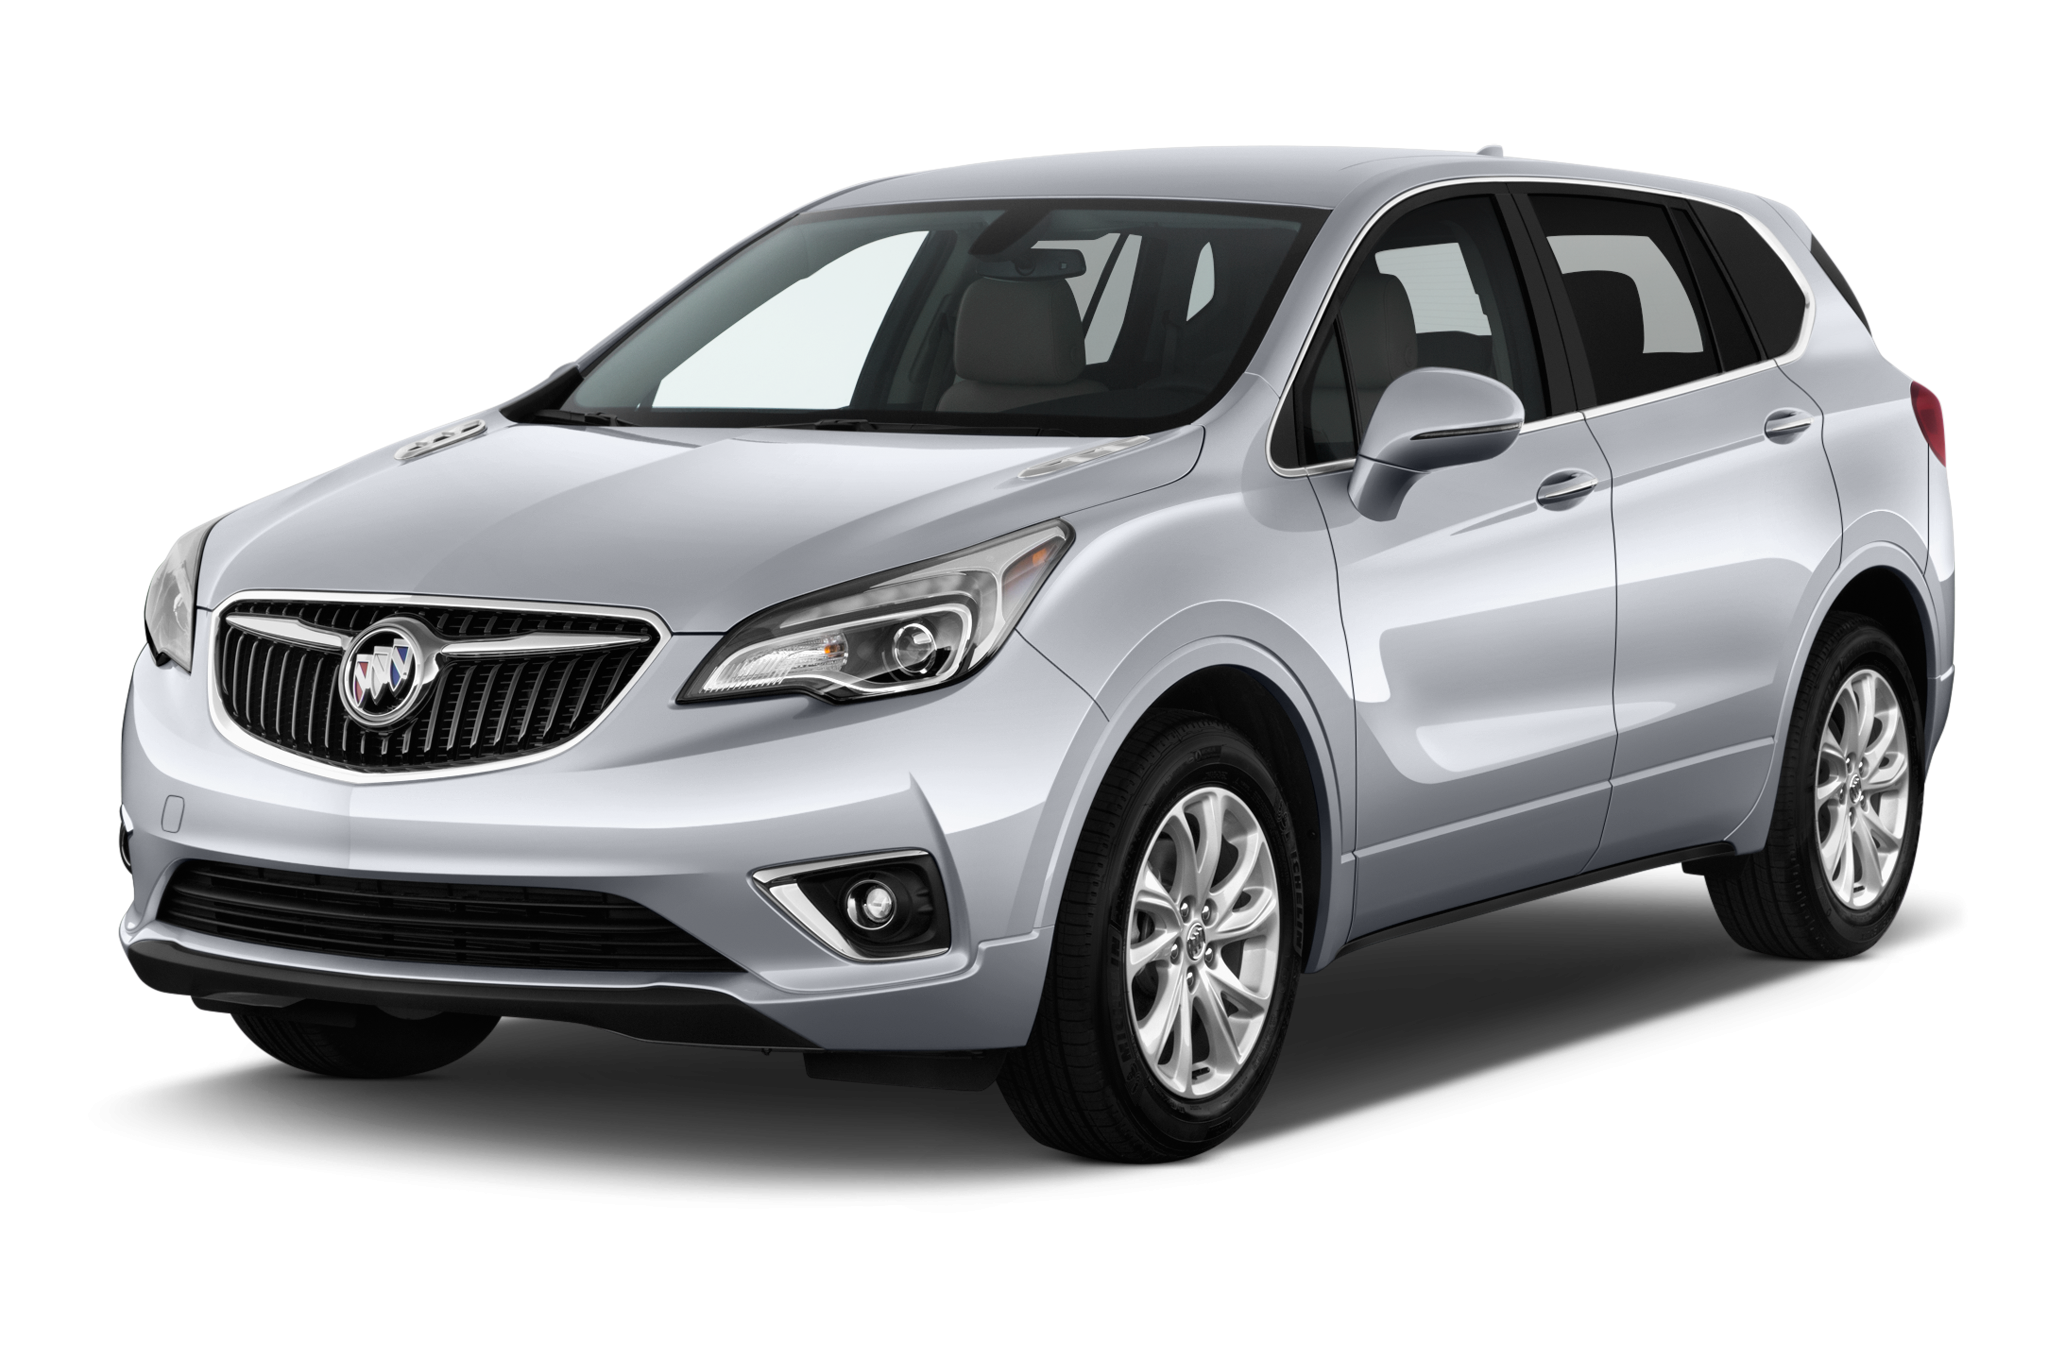 2019 Buick Envision Buyer's Guide: Reviews, Specs, Comparisons 2021 Buick Envision Mpg, Models, Manual